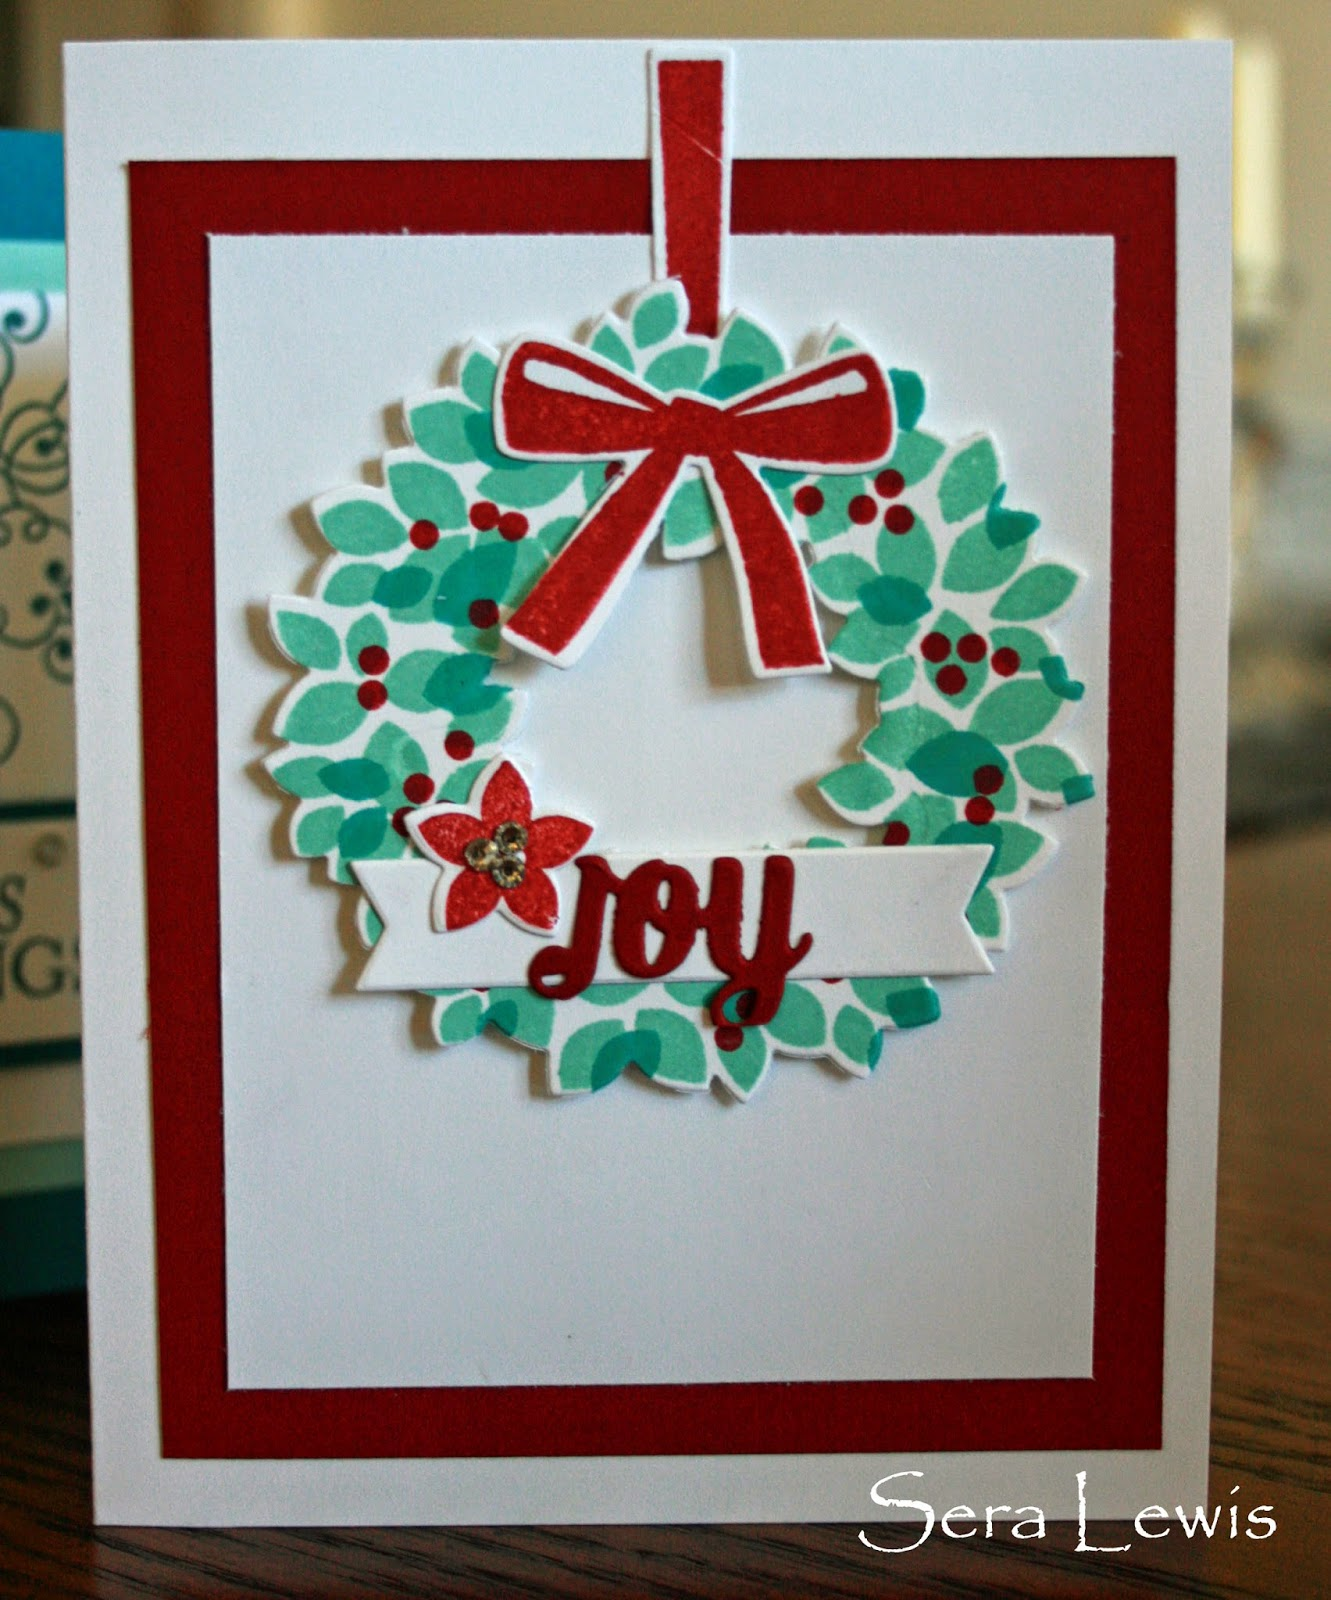 Christmas card uses Stampin' Up! Wondrous Wreath stamp set and Wonderful Wreath framelits